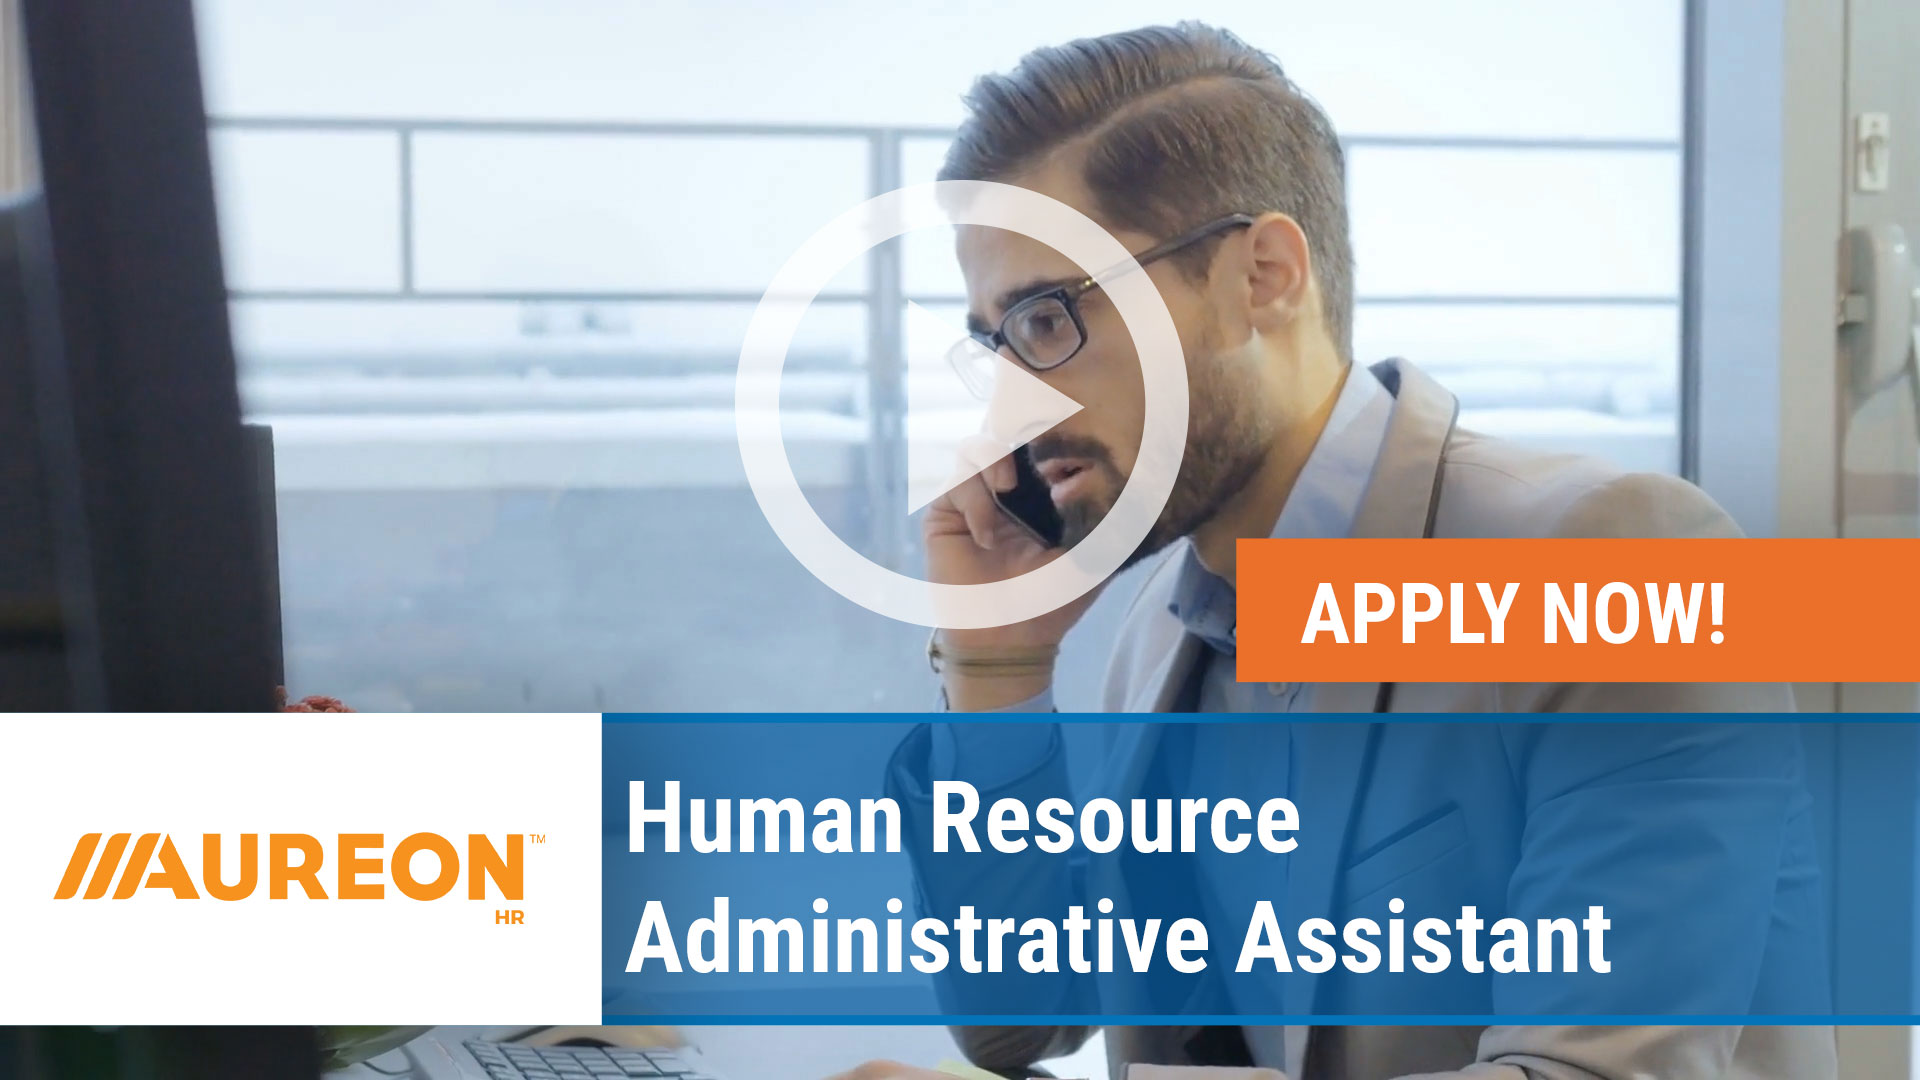 Watch our careers video for available job opening Human Resource Administrative Assistant in Des Moines Downtown